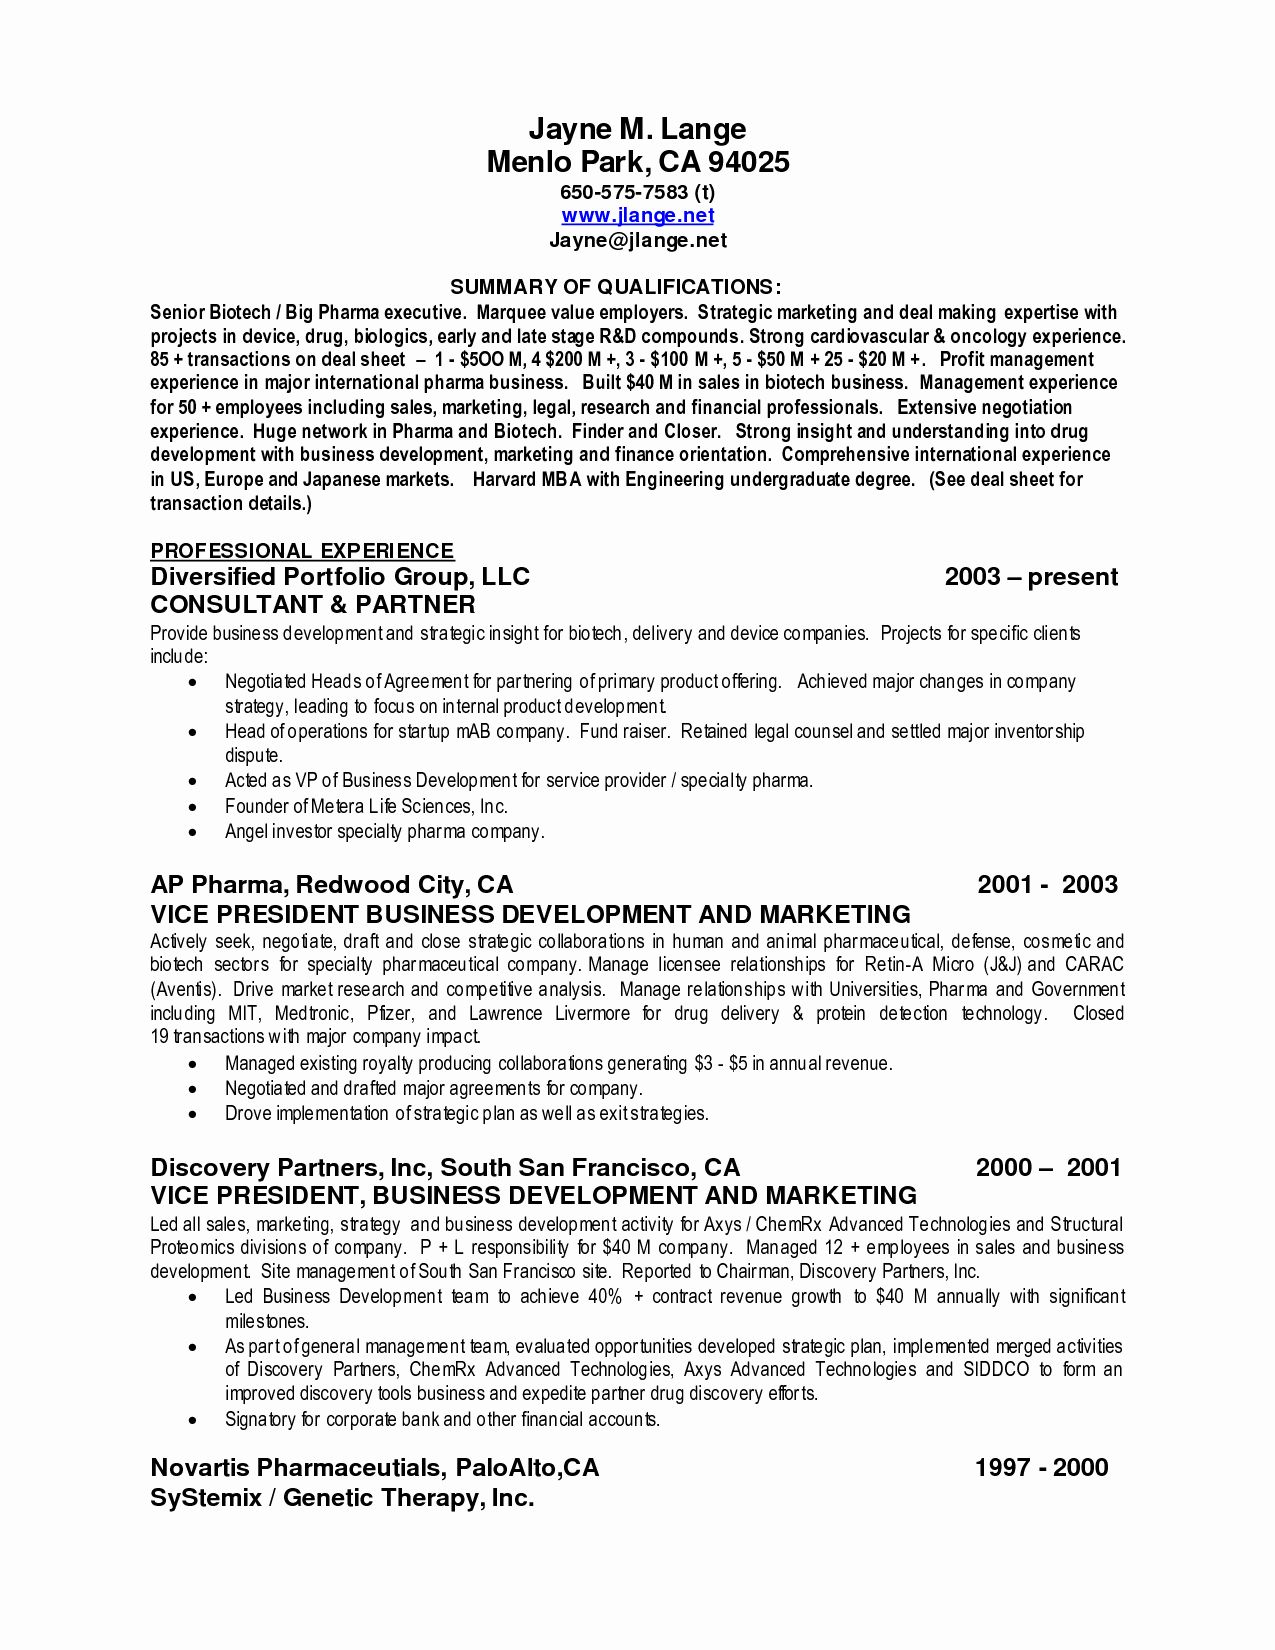 accounting resume summary of qualifications examples elegant best job for request review Resume Summary Of Qualifications For Resume Examples